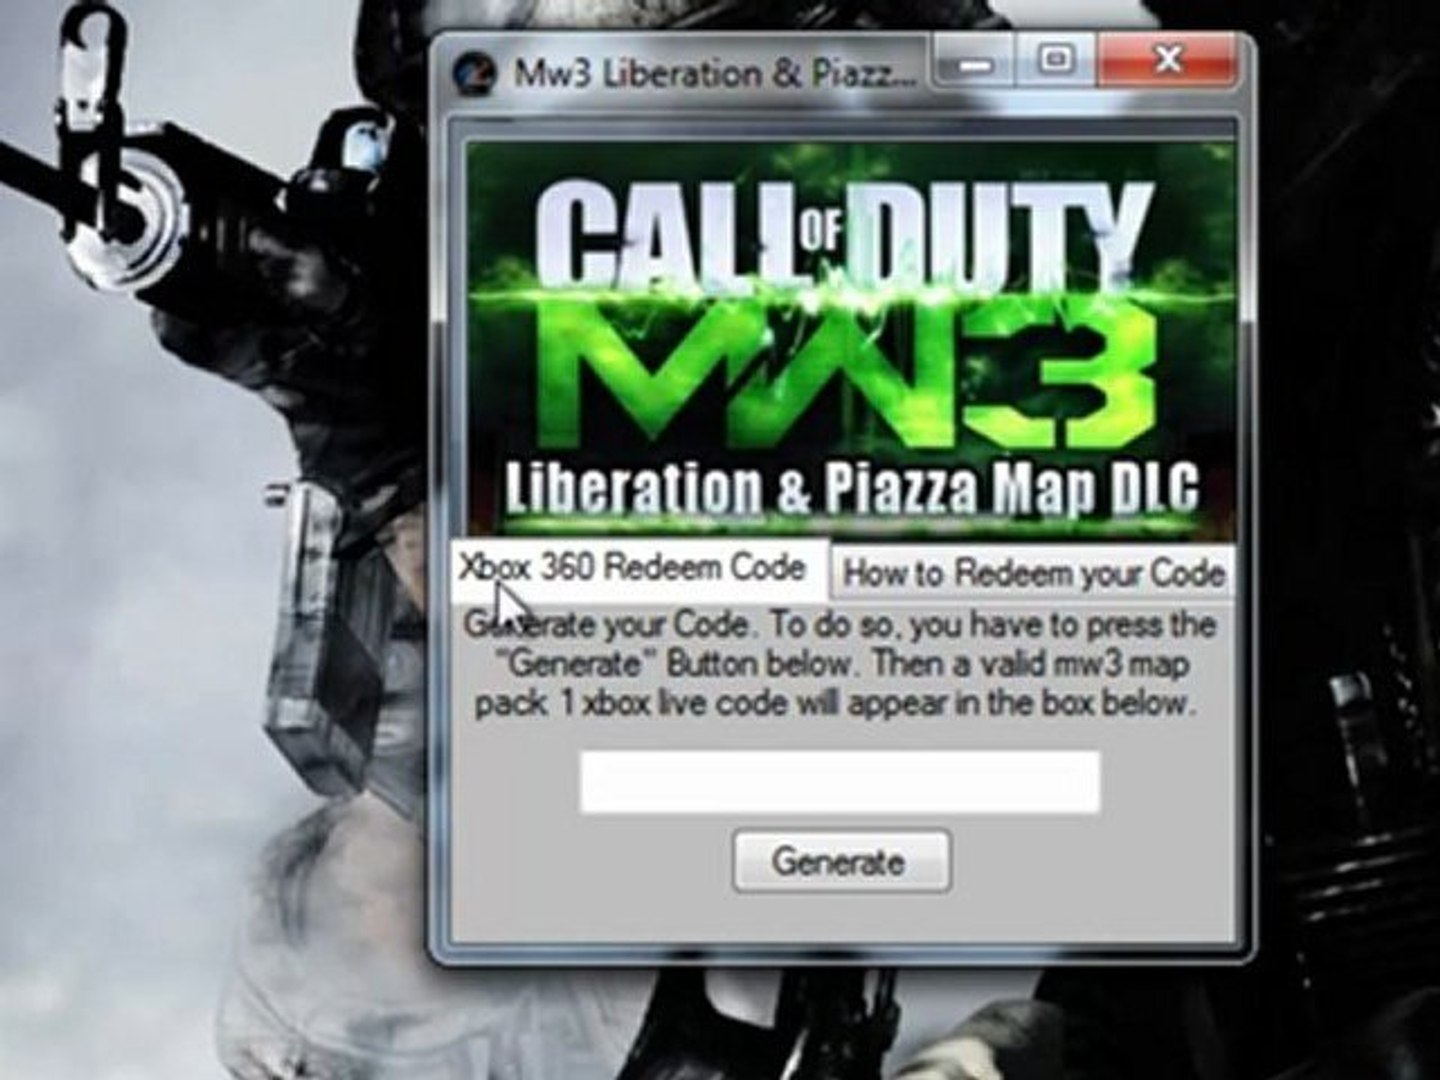 How to get Mw3 DLC Liberation & Piazza for Free Xbox 360 (USB)